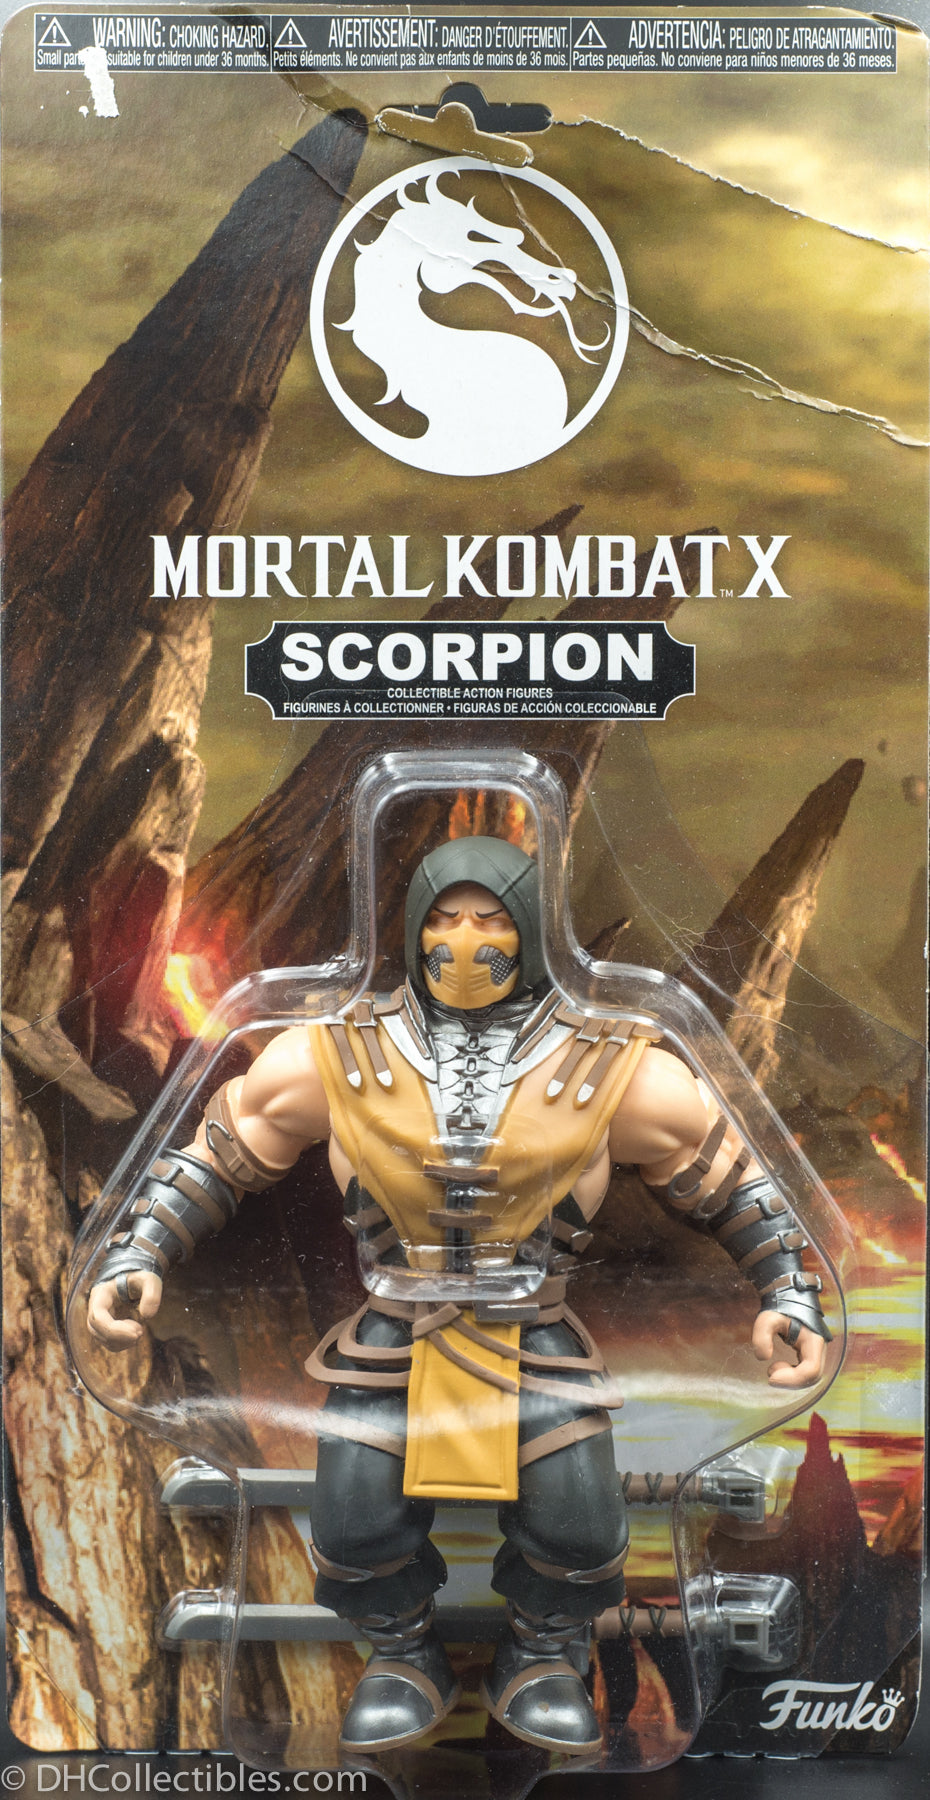 2017 Funko Savage World Mortal Kombat X Scorpion Action Figure